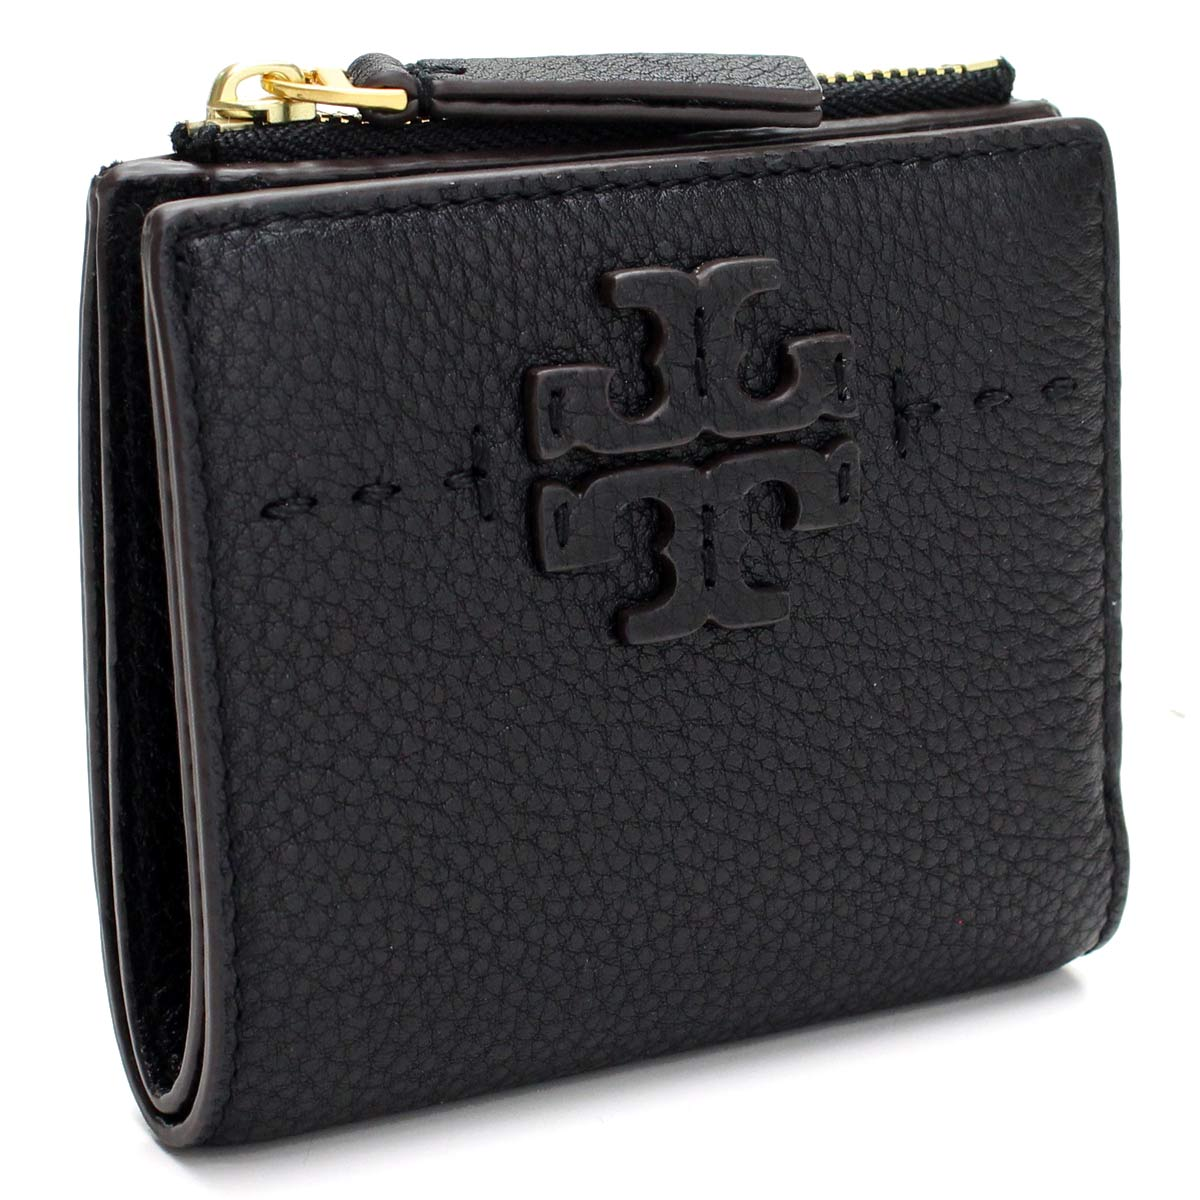 1d51359c950 Bighit The total brand wholesale  Mini-wallet 45246 001 BLACK black with  the Tolly Birch TORY BURCH MCGRAW two fold wallet coin purse